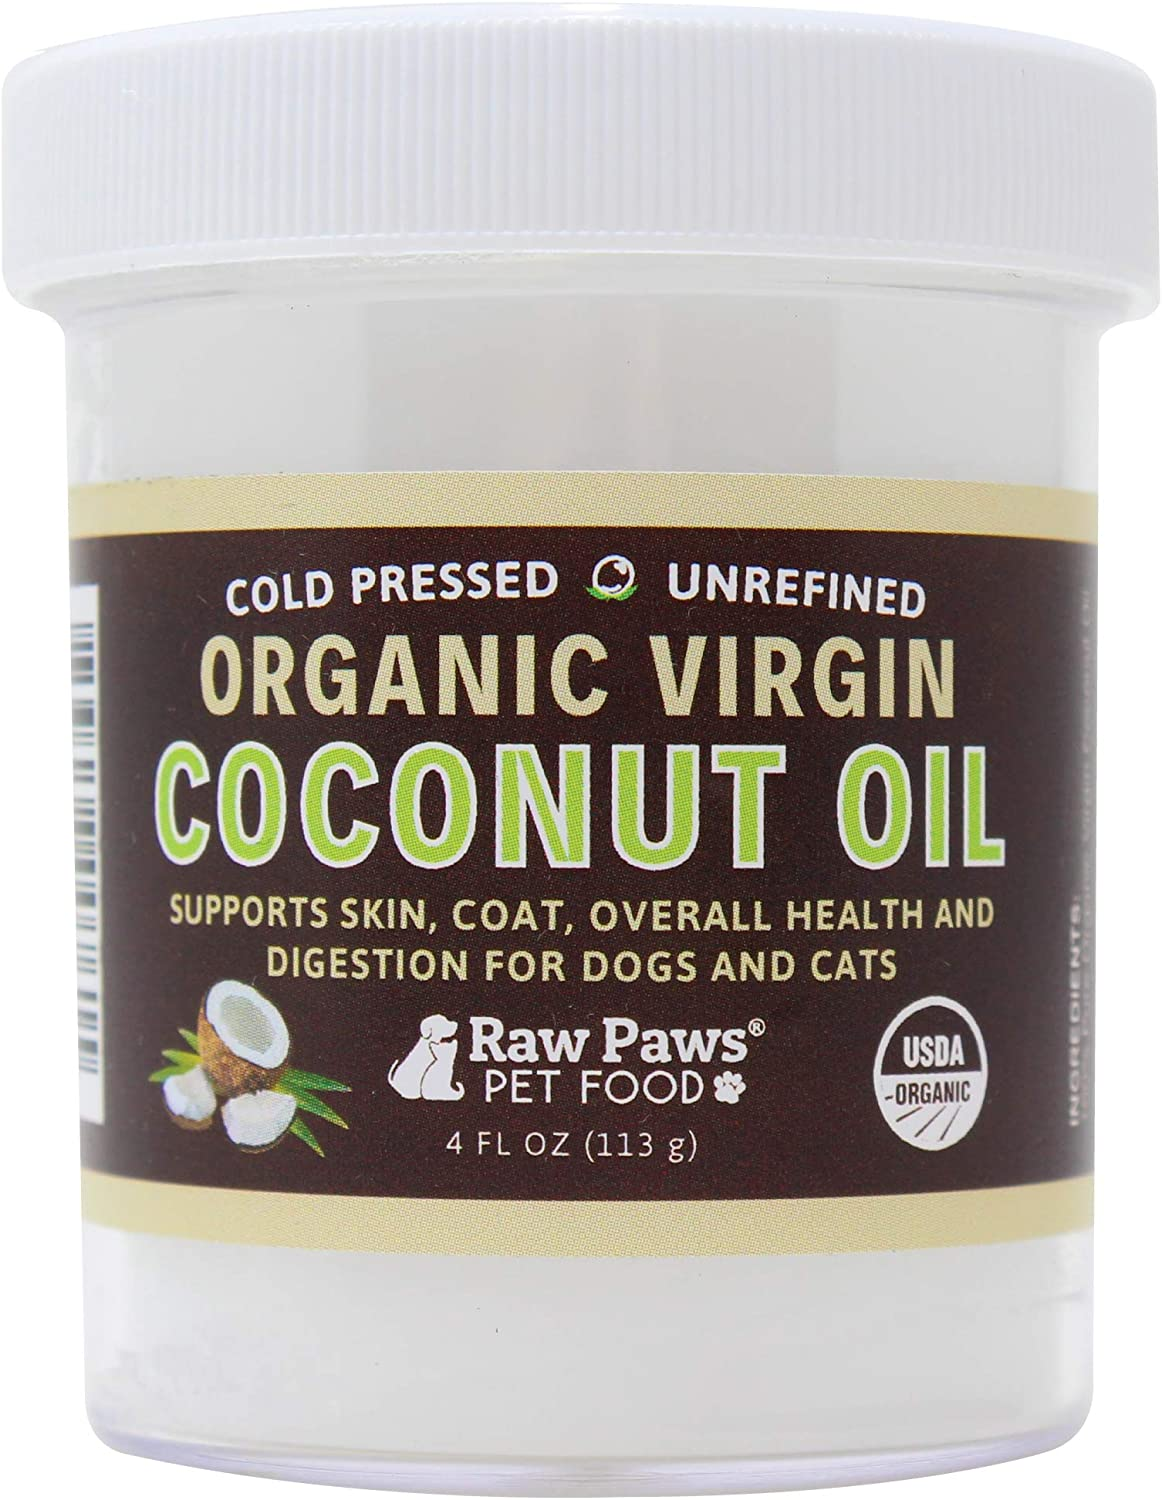 Raw Paws Organic Virgin Coconut Oil for Dogs & Cats, 4oz  Supports Immune System, Digestion, Oral Health, Thyroid  All Natural Allergy Relief for Dogs, Hairball Relief, Tick Flea Control for Dogs